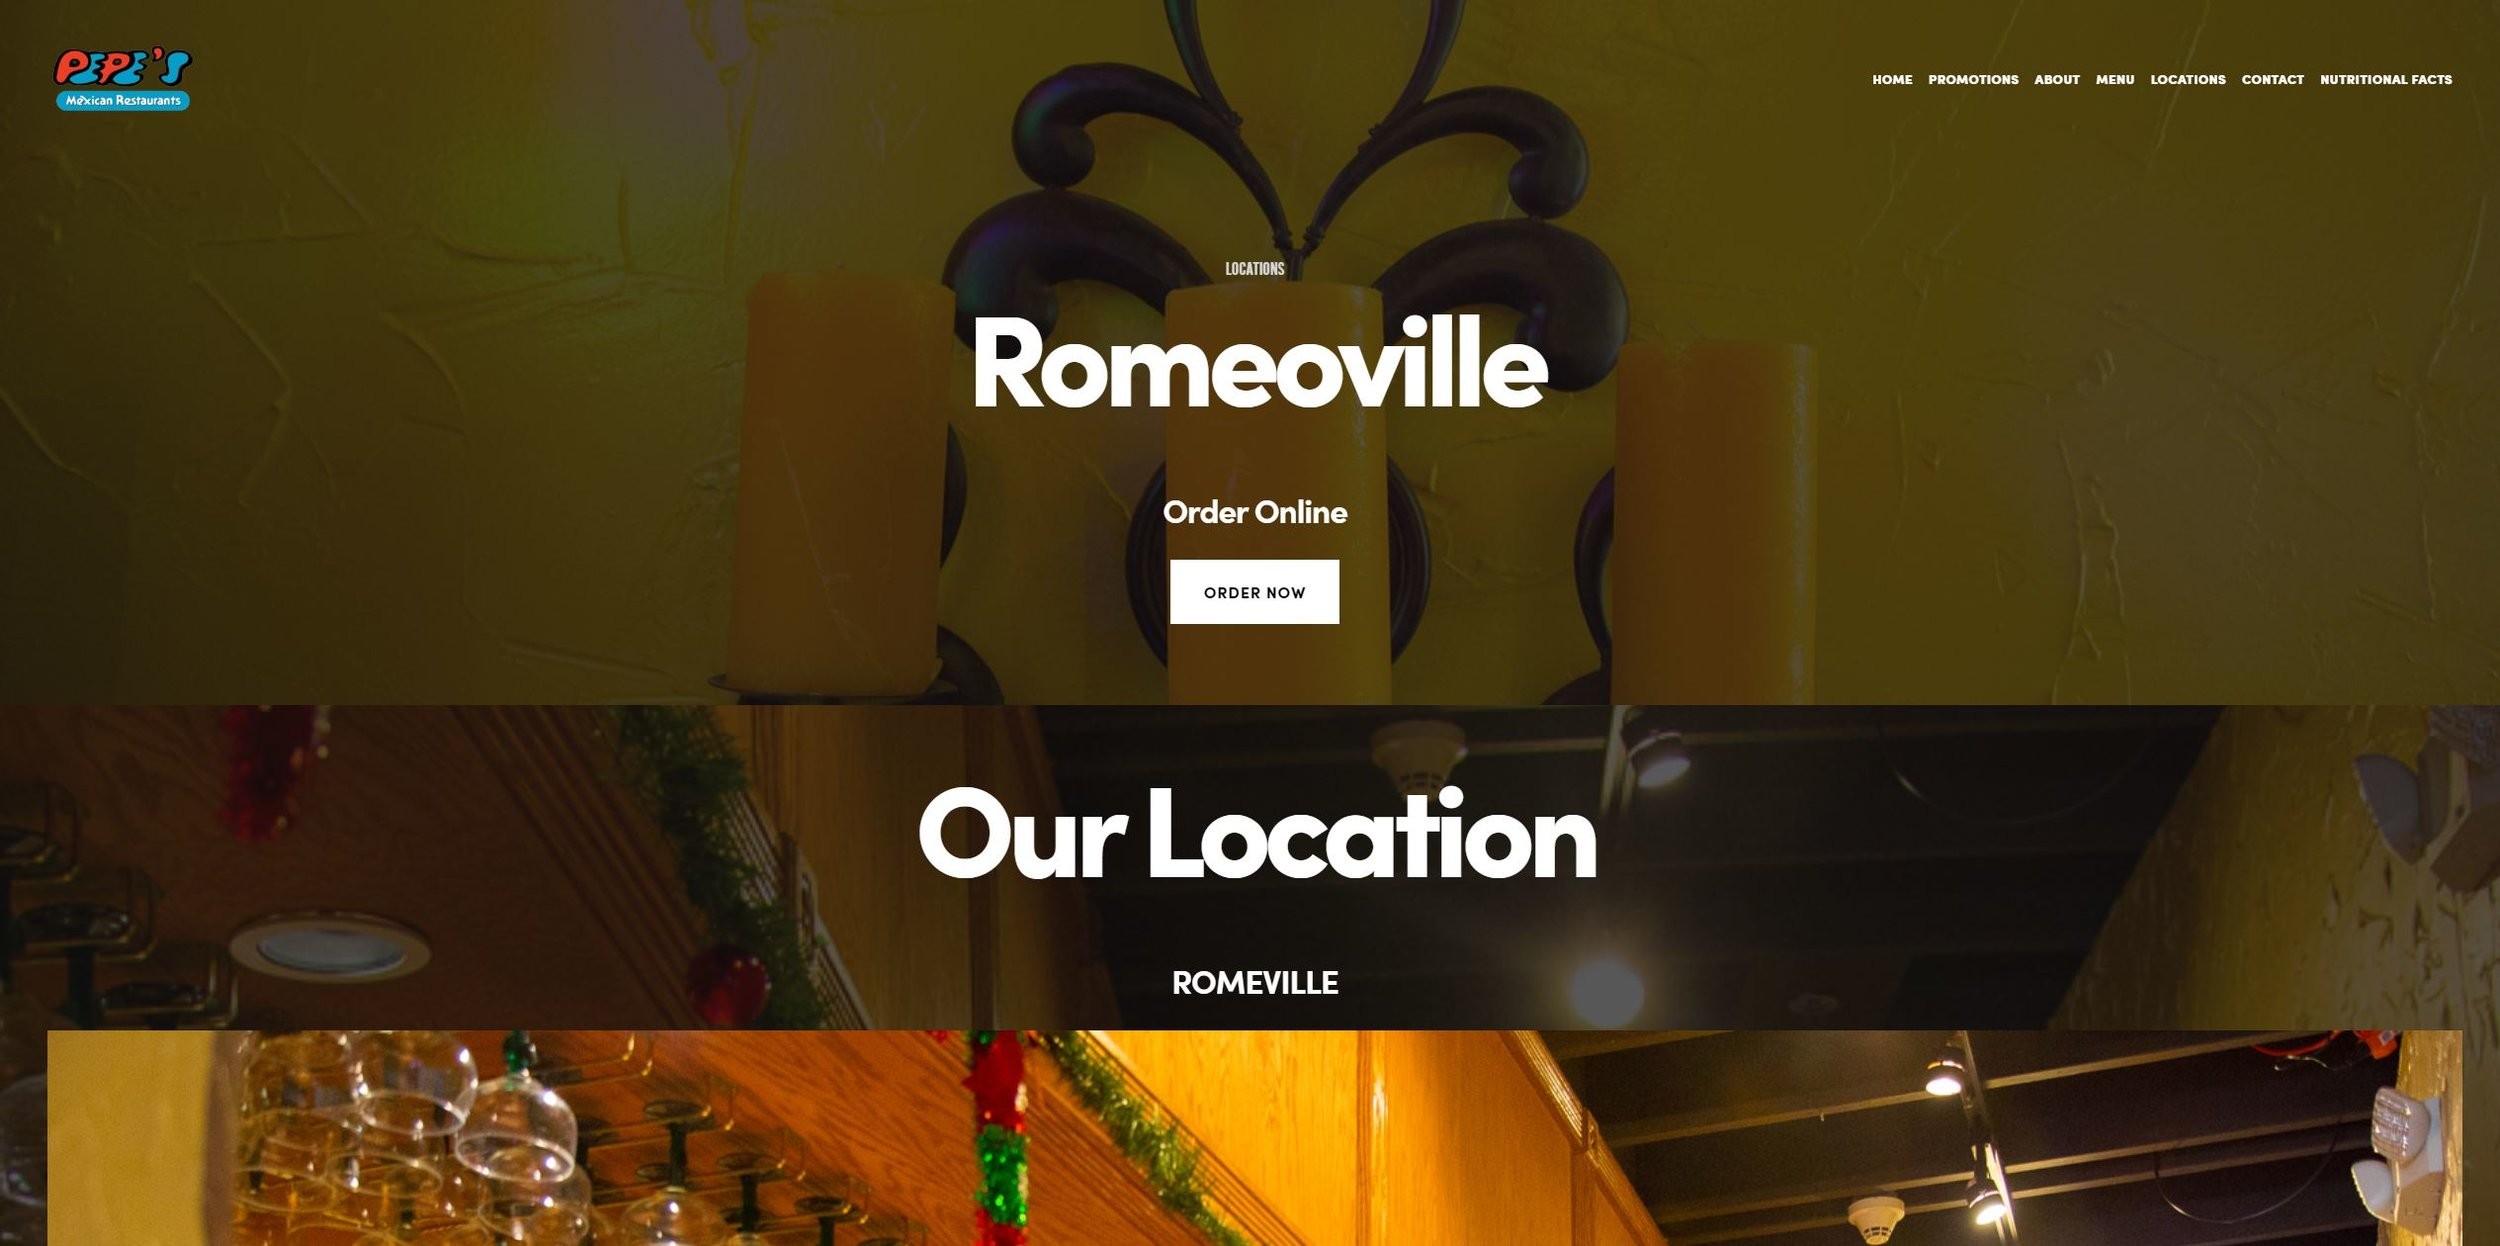 Pepes home page Romeoville.JPG